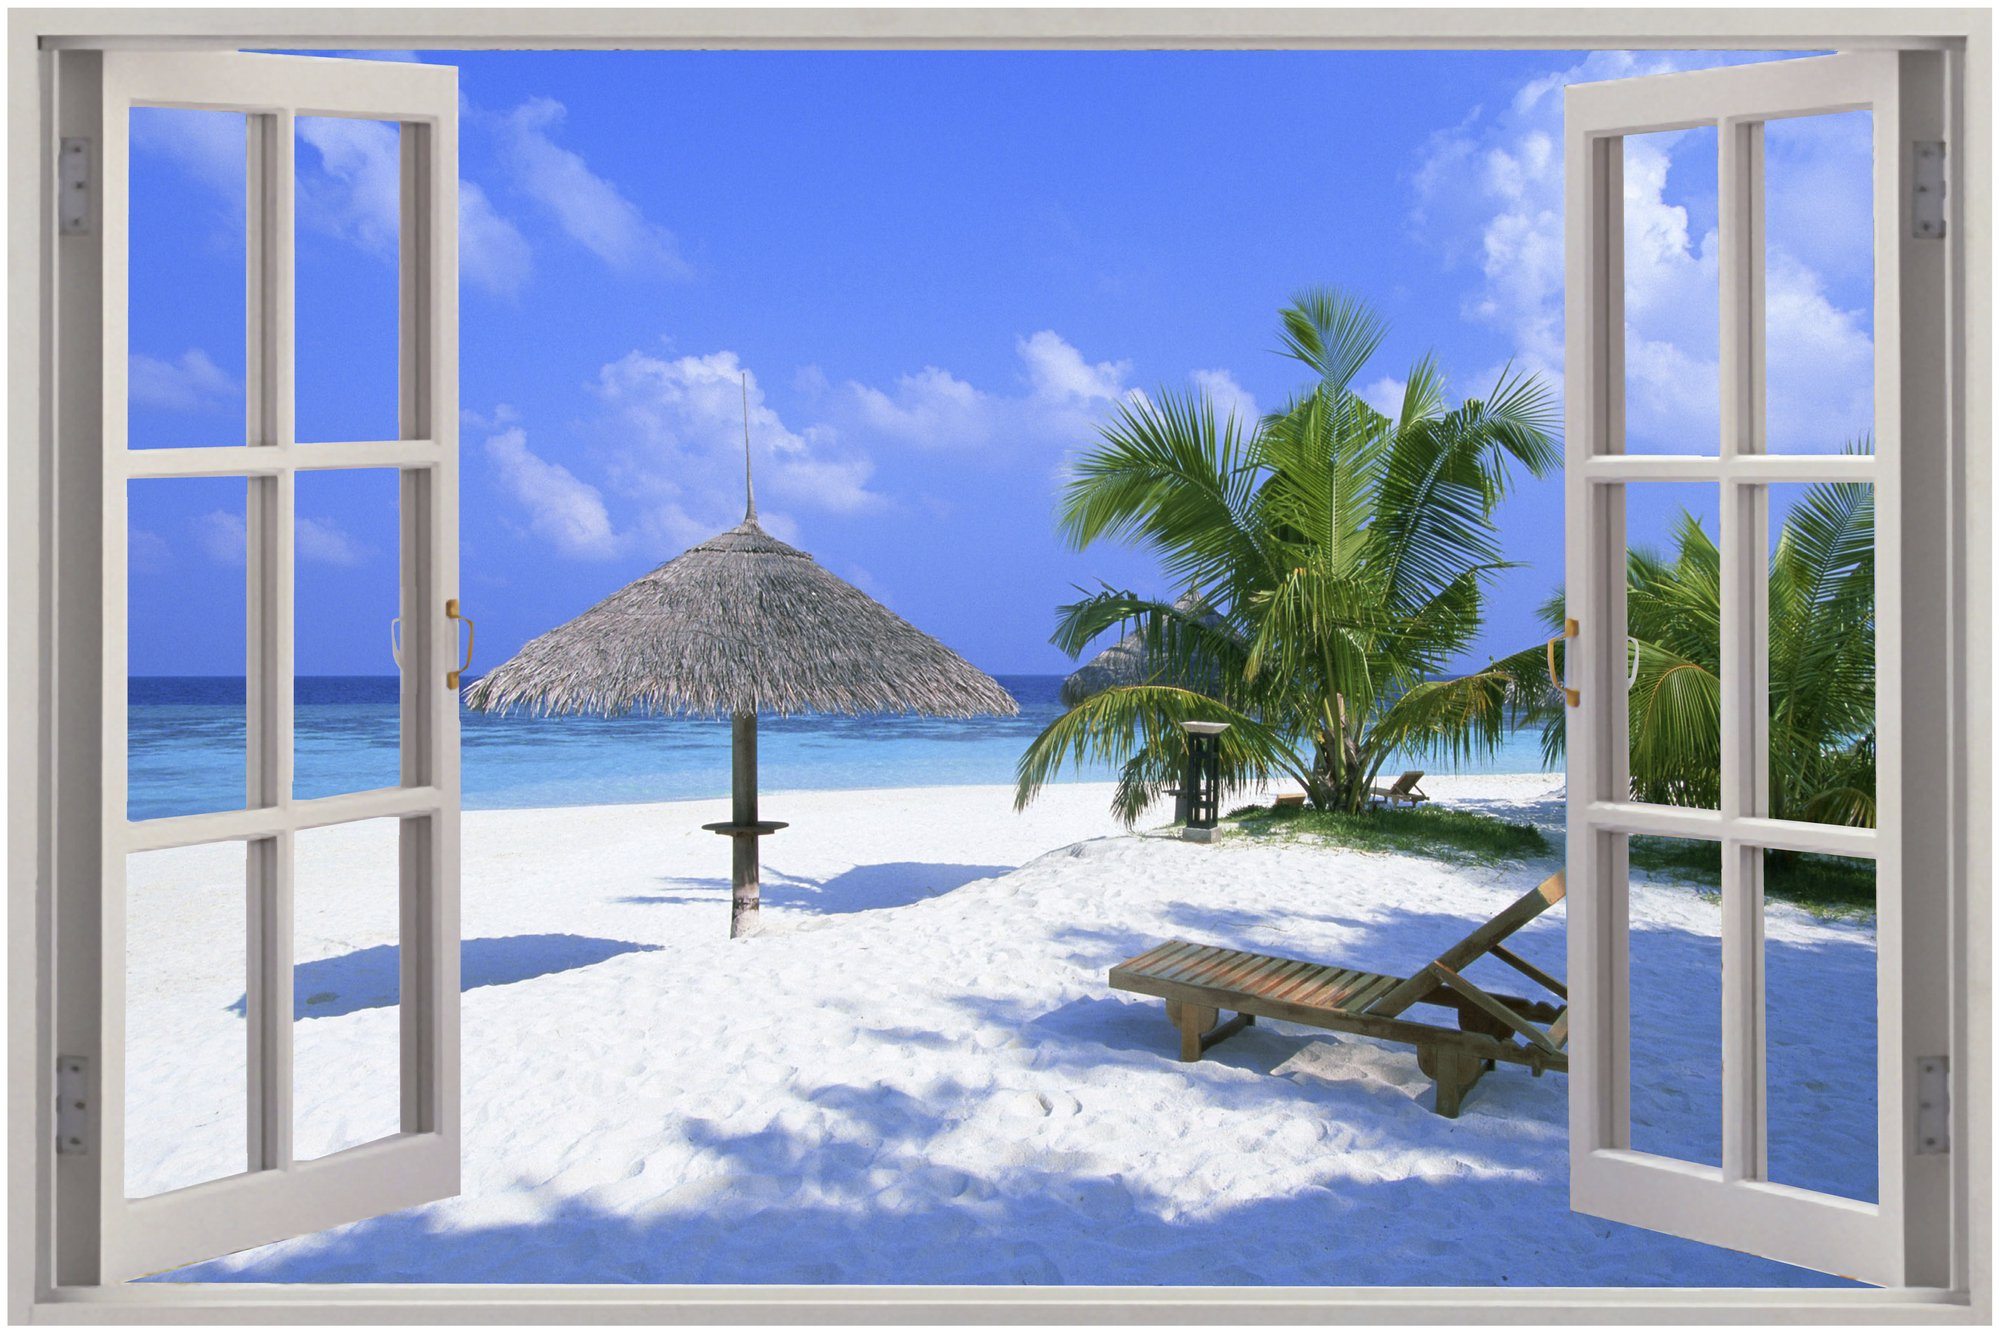 Huge 3D Arched Window Exotic Beach View Wall Stickers Film Mural Art Decal 533